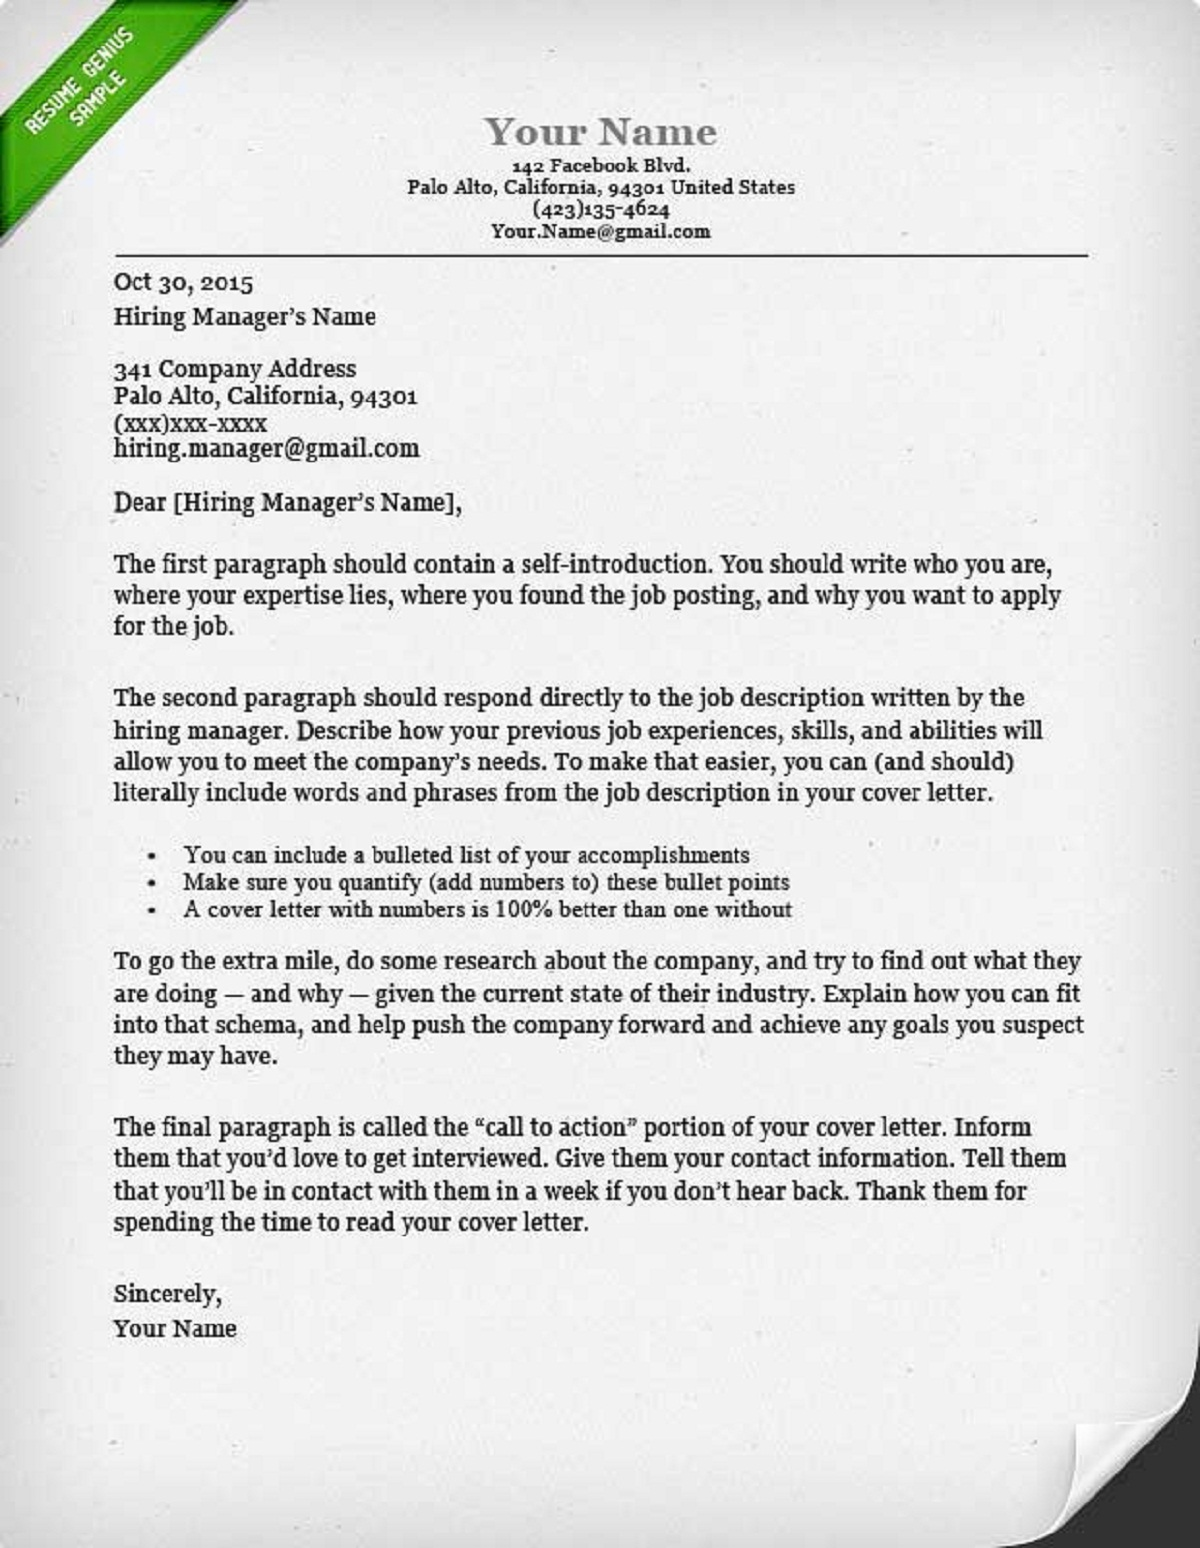 How to write a cover letter guide with sample how can done for How to wrie a cover letter